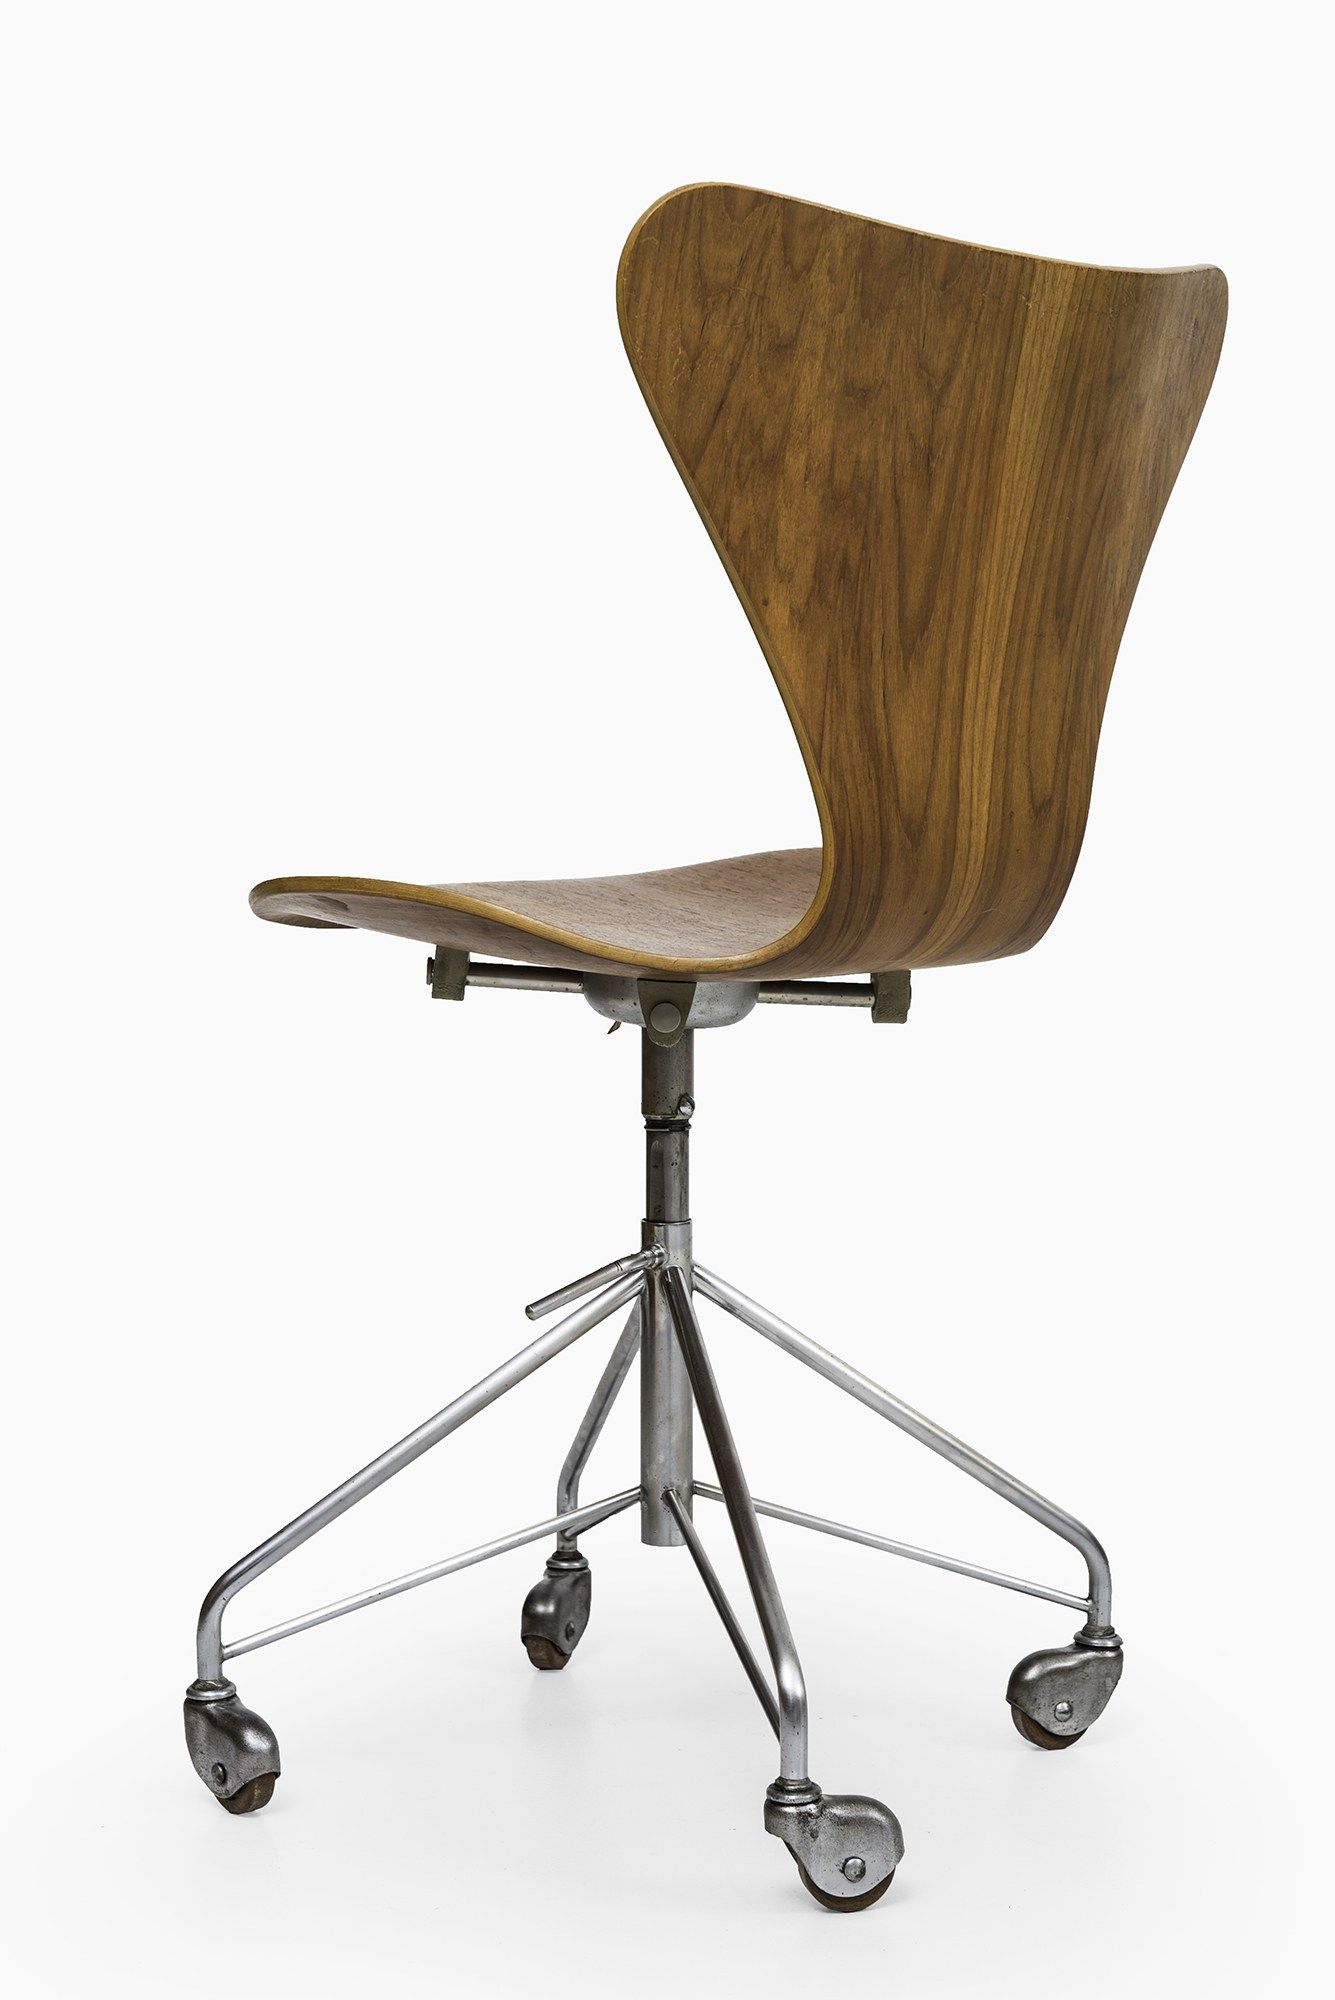 Arne Jacobsen Office Chair Model 3117 In Teak At Studio Schalling